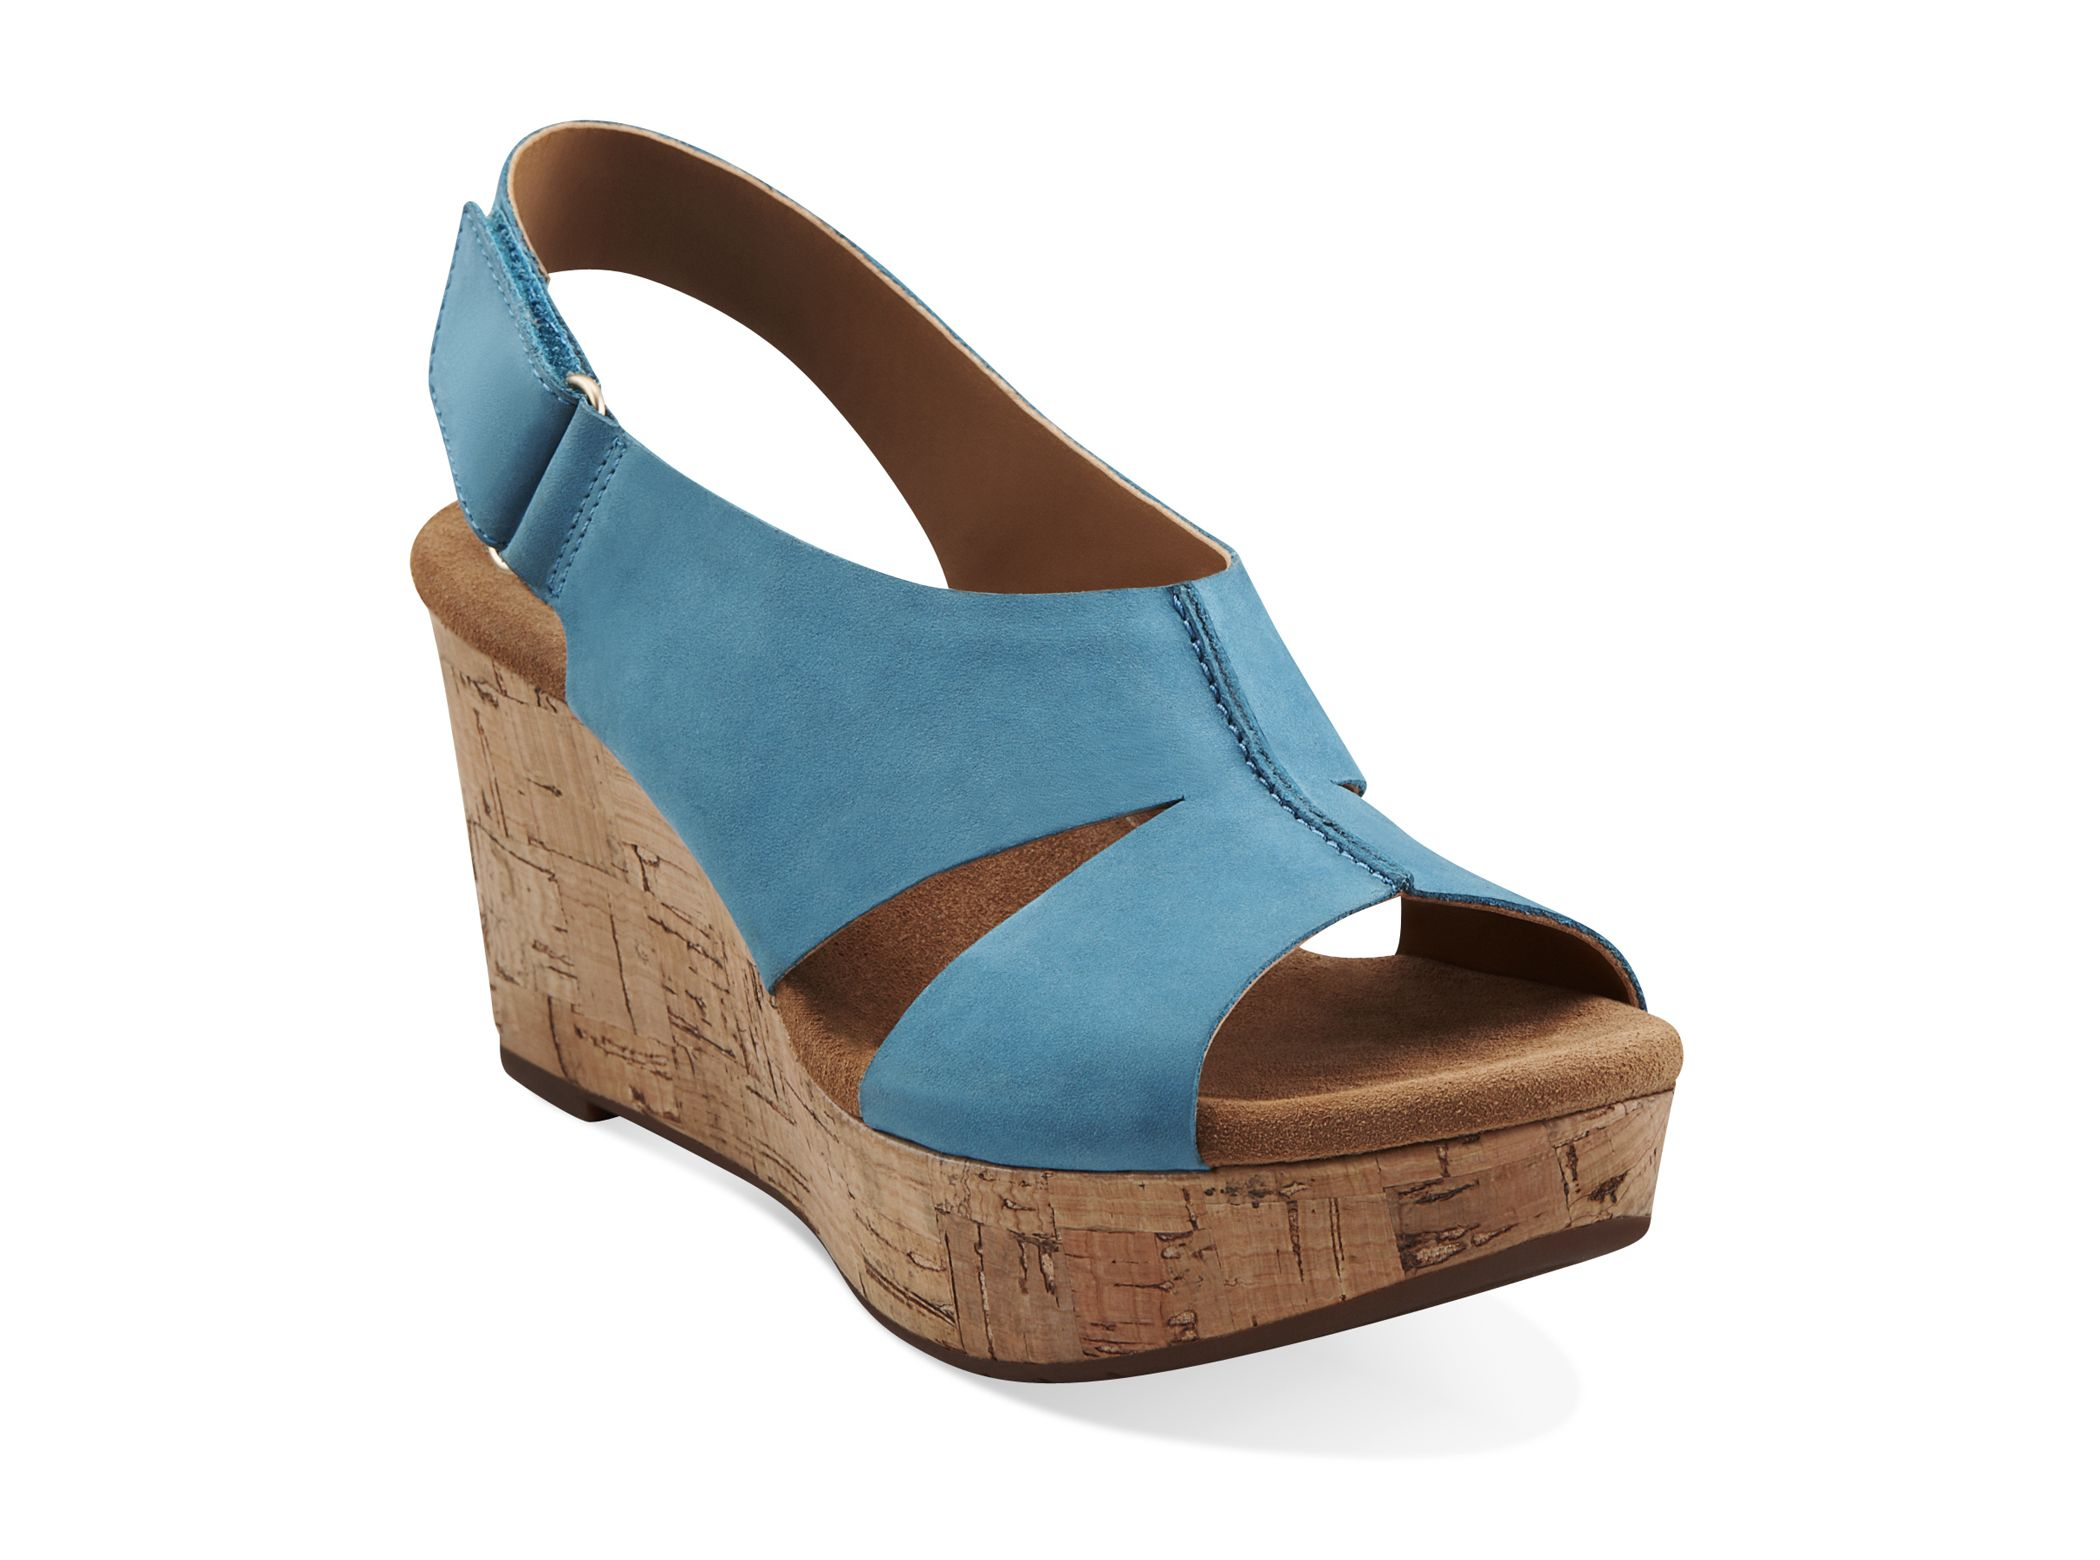 fd6c48566 These are the most comfortable shoes I ve purchased in a long time! Caslynn  Lizzie in Teal Nubuck - Womens Sandals from Clarks